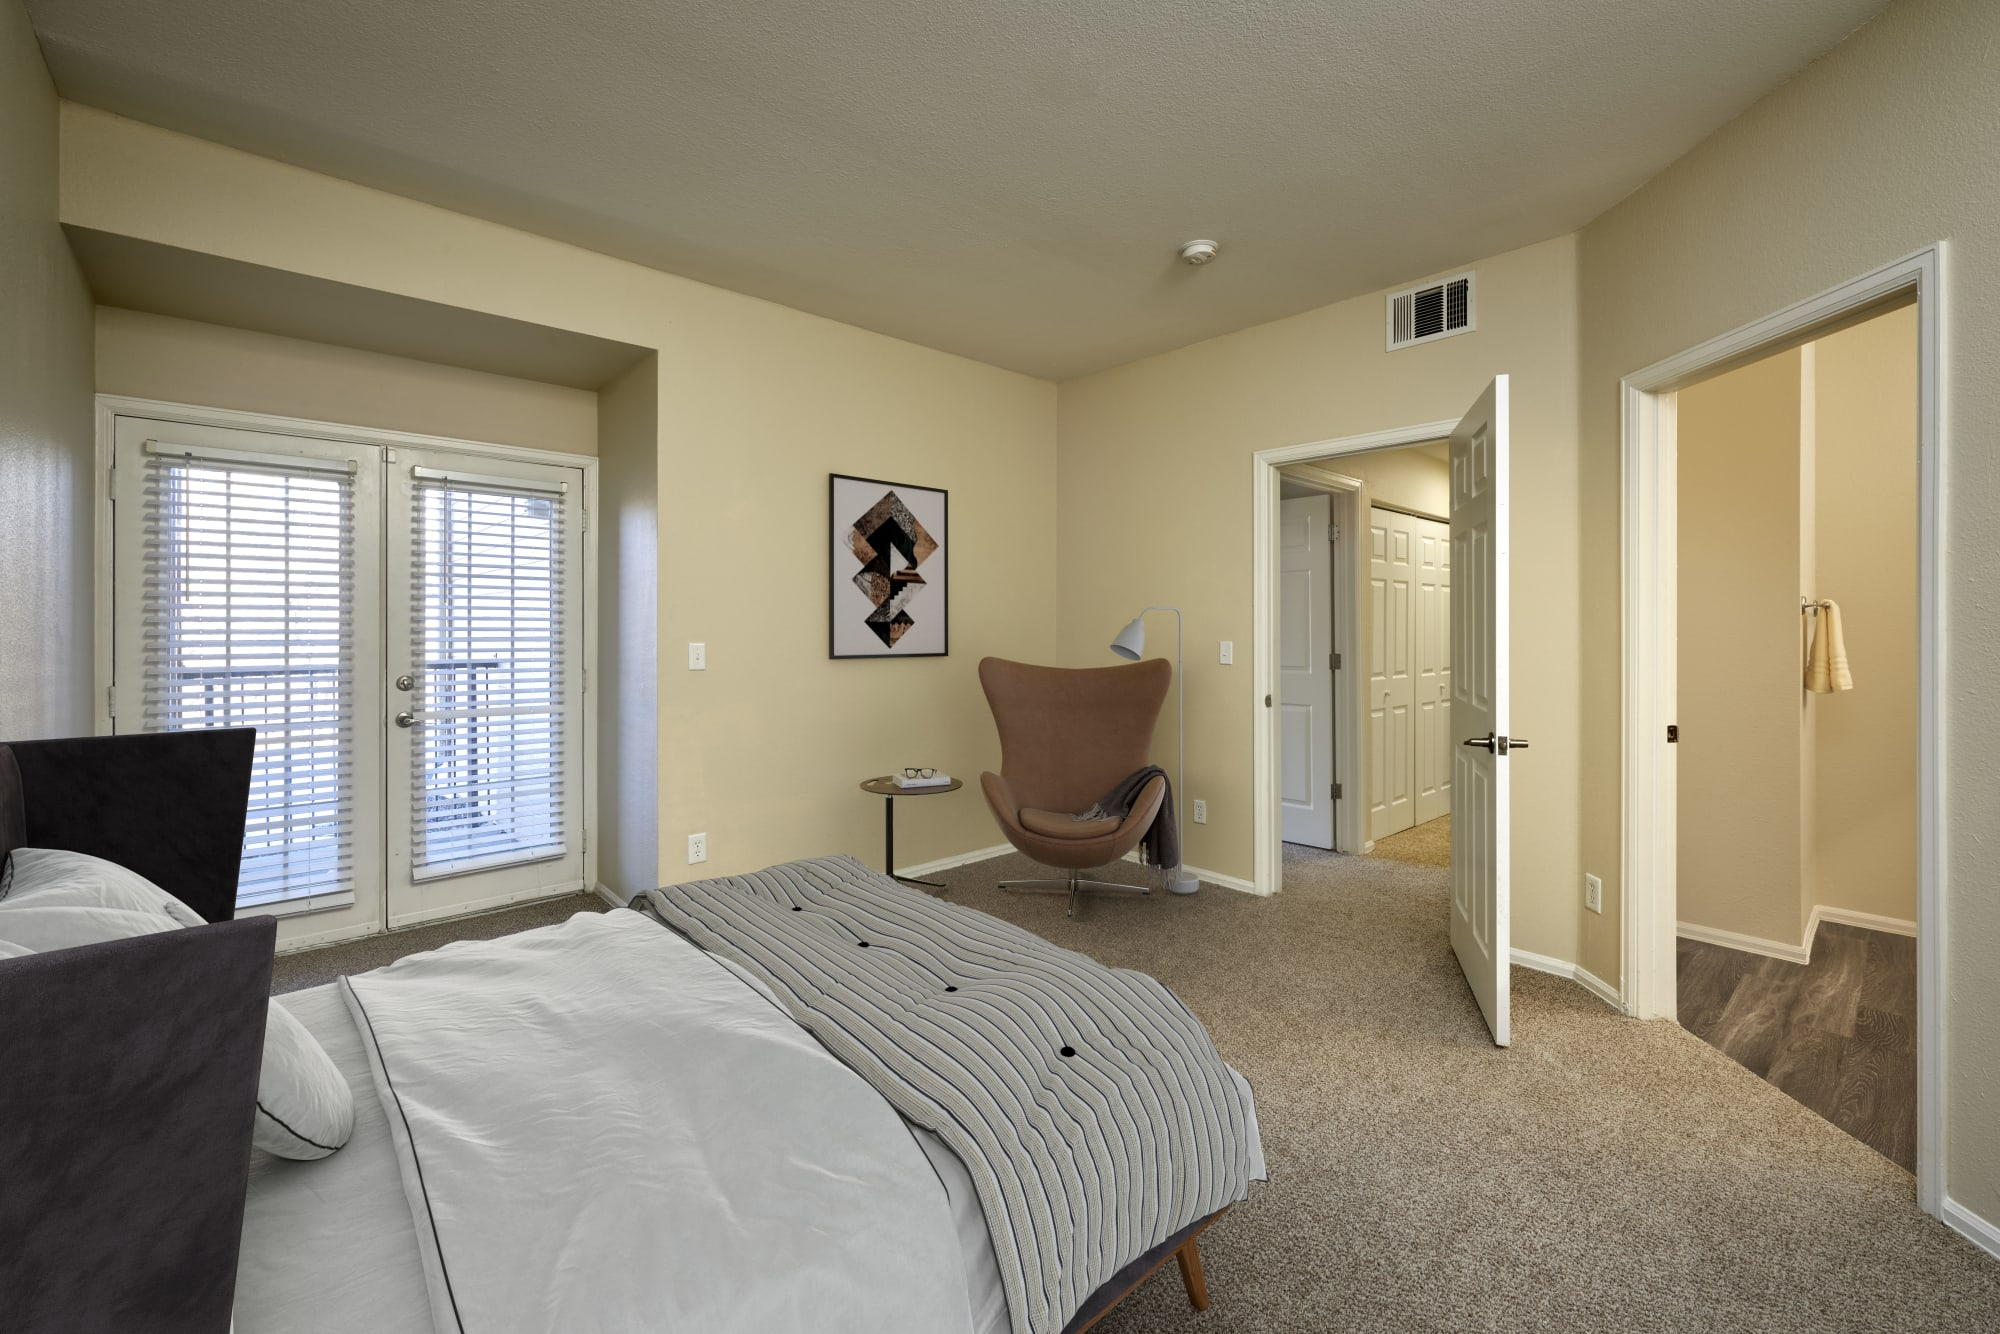 A spacious master bedroom with a bathroom at The Crossings at Bear Creek Apartments in Lakewood, Colorado